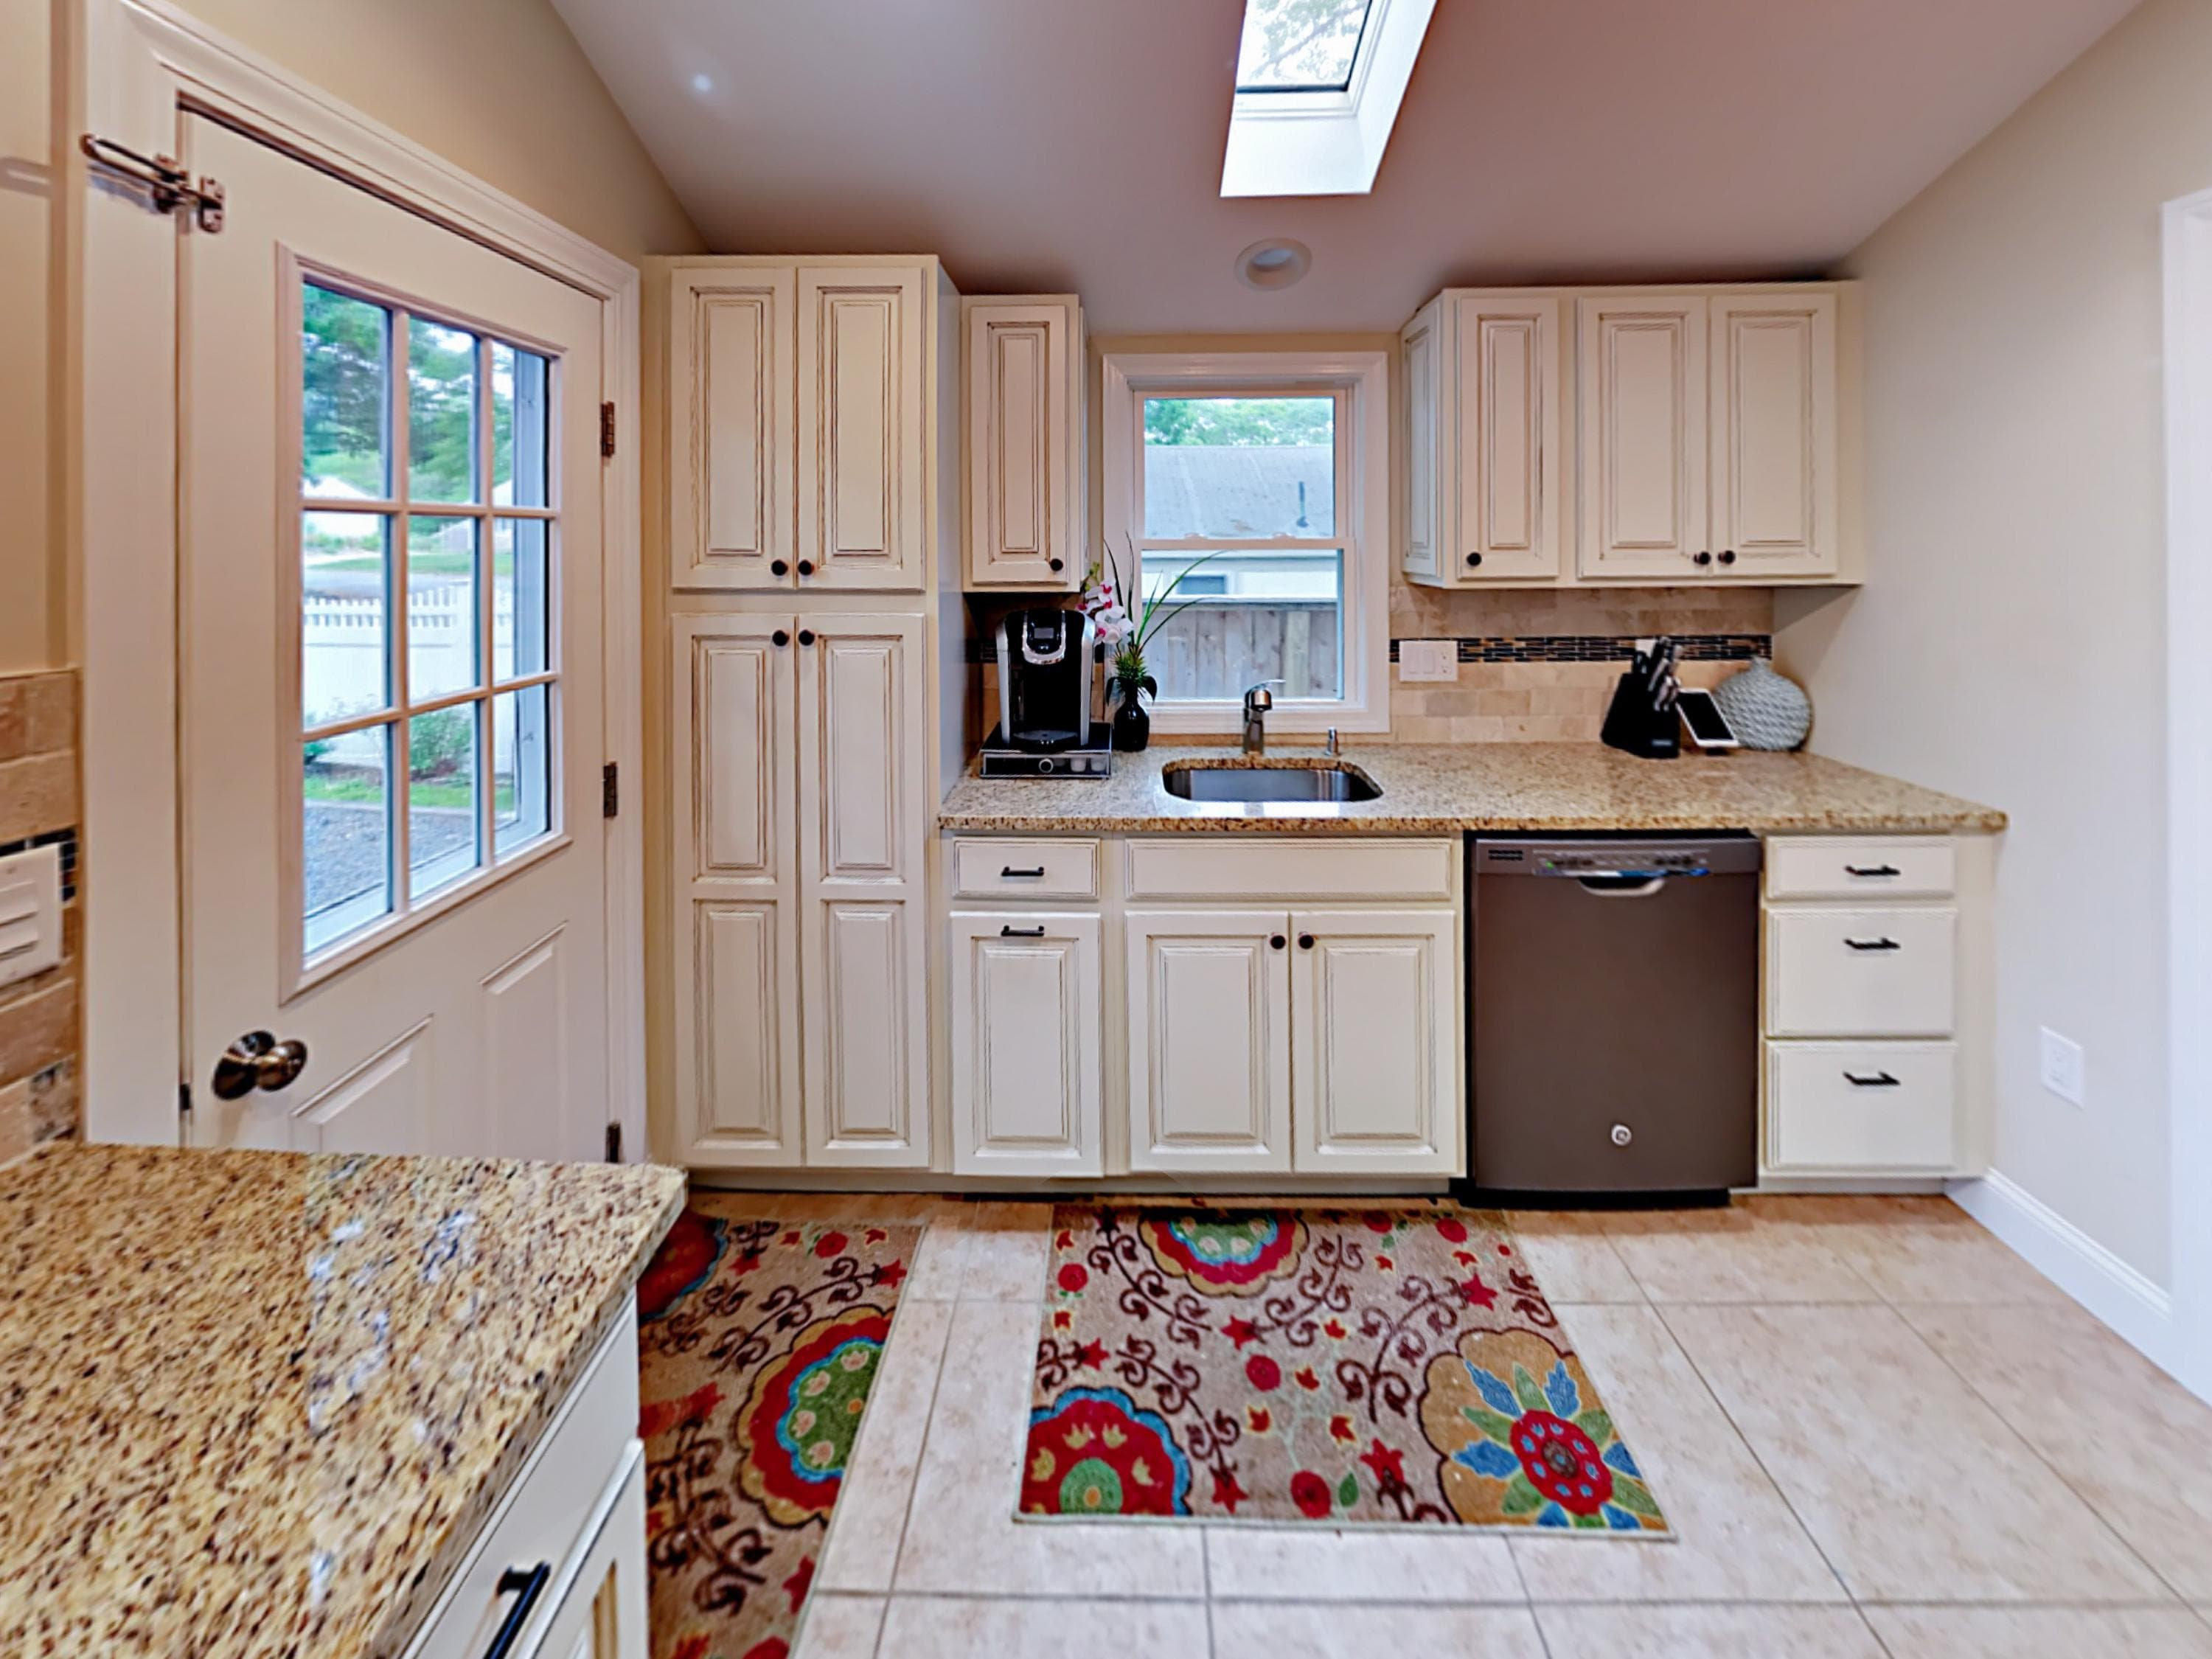 Granite countertops and quality stainless steel appliances shine in the gourmet kitchen.